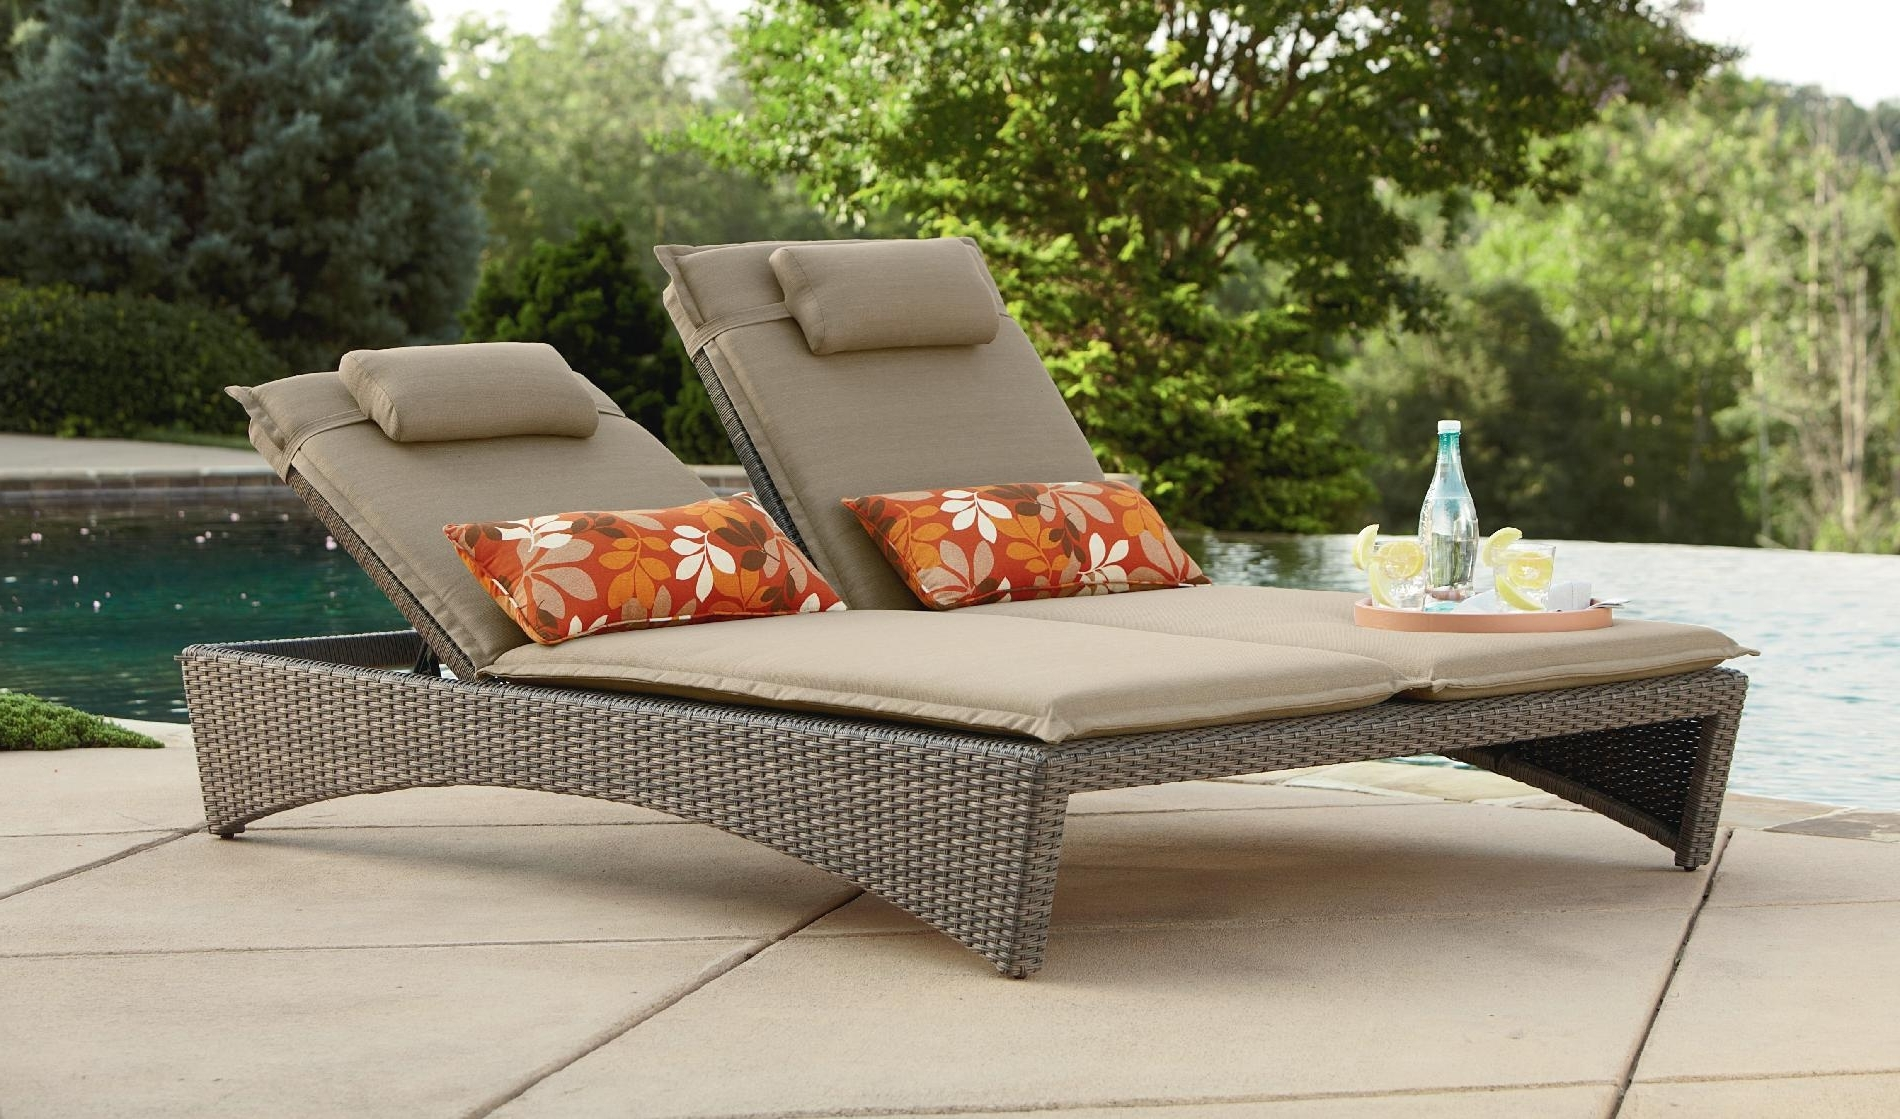 Widely Used Picture 3 Of 35 – Walmart Patio Lounge Chairs Luxury Patio Intended For Double Chaise Lounge Chairs (View 14 of 15)